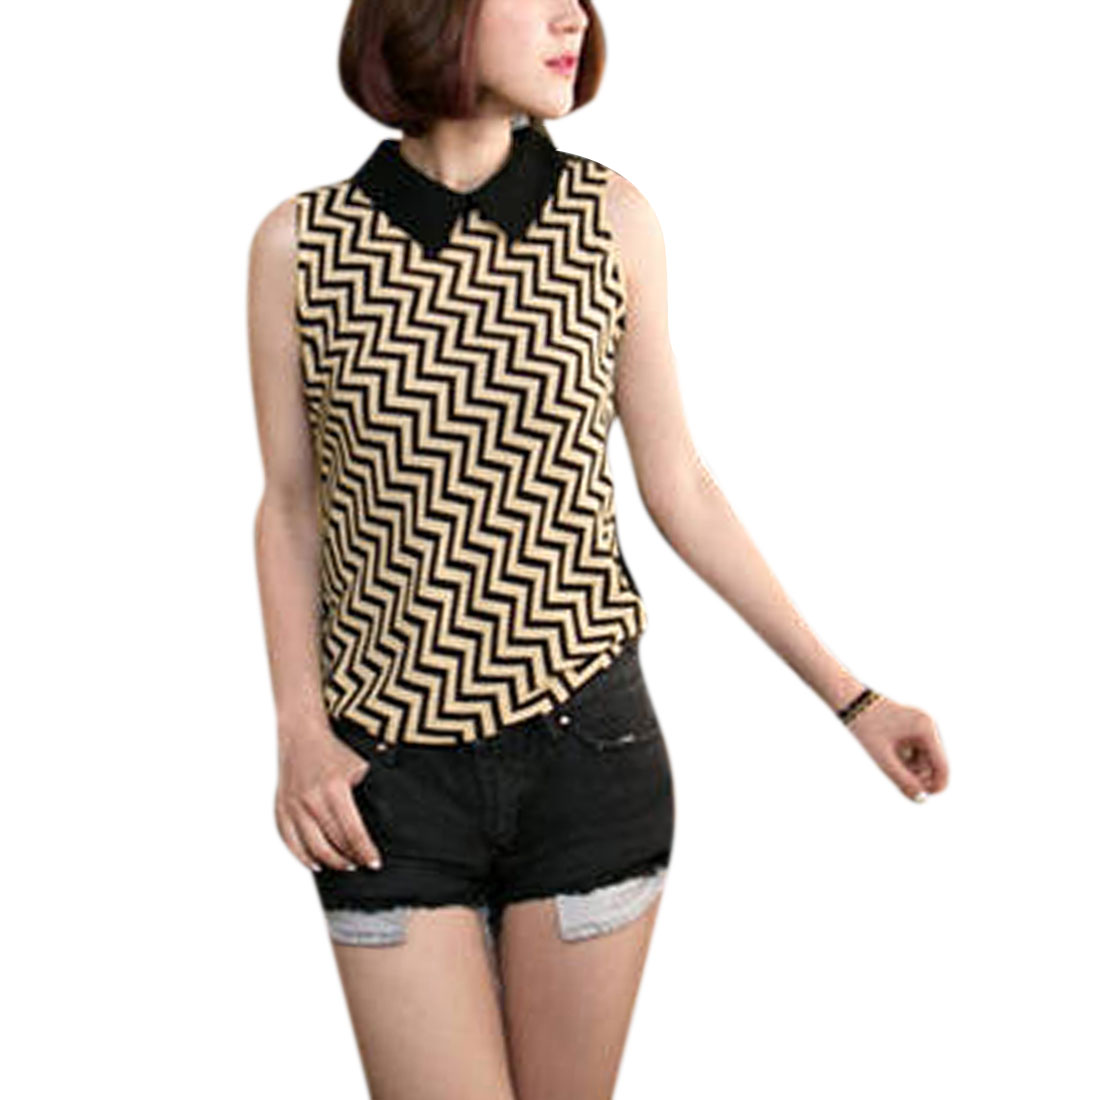 Ladies Beige Black Point Colalr Zigzag Pattern Summer Shirt XS